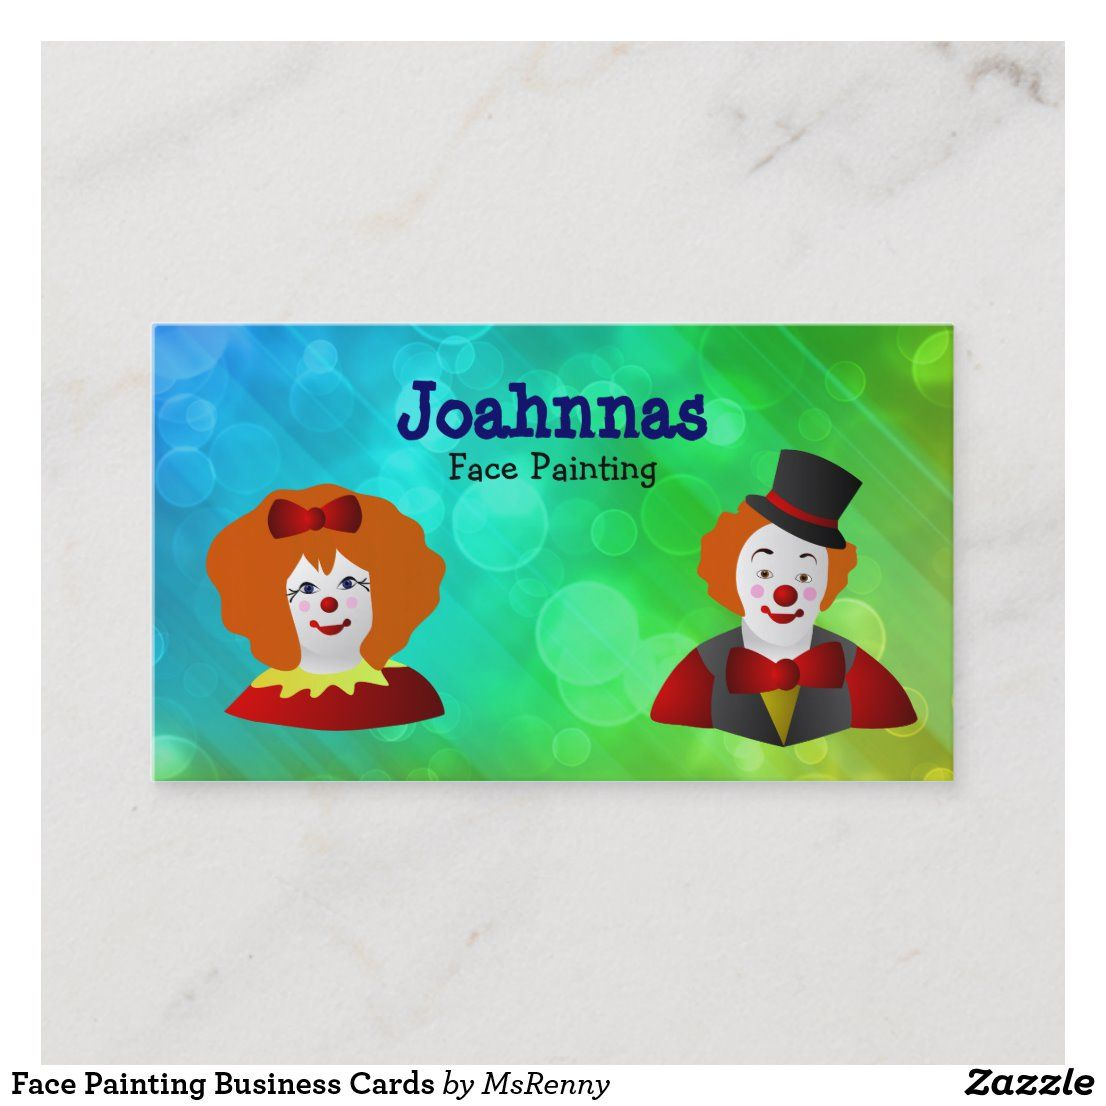 Face Painting Business Cards Zazzle Com Face Painting Art For Kids Cards